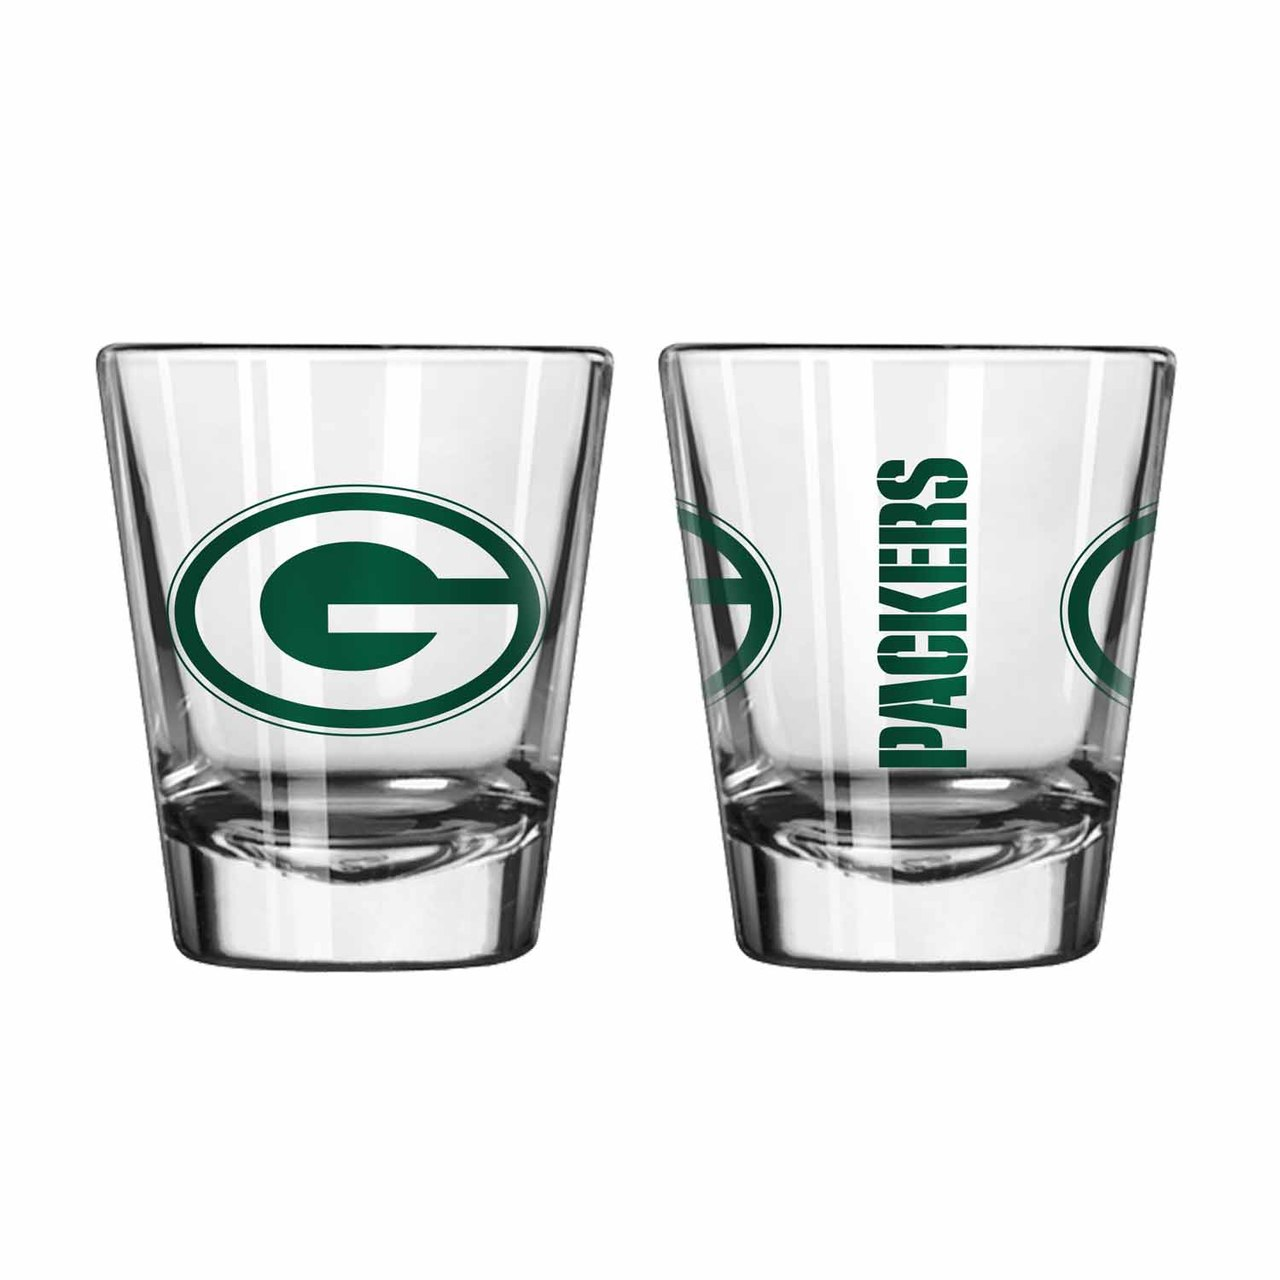 Single Shot Glass NFL Green Bay Packers Green Bay Packers BOFBGBASHS